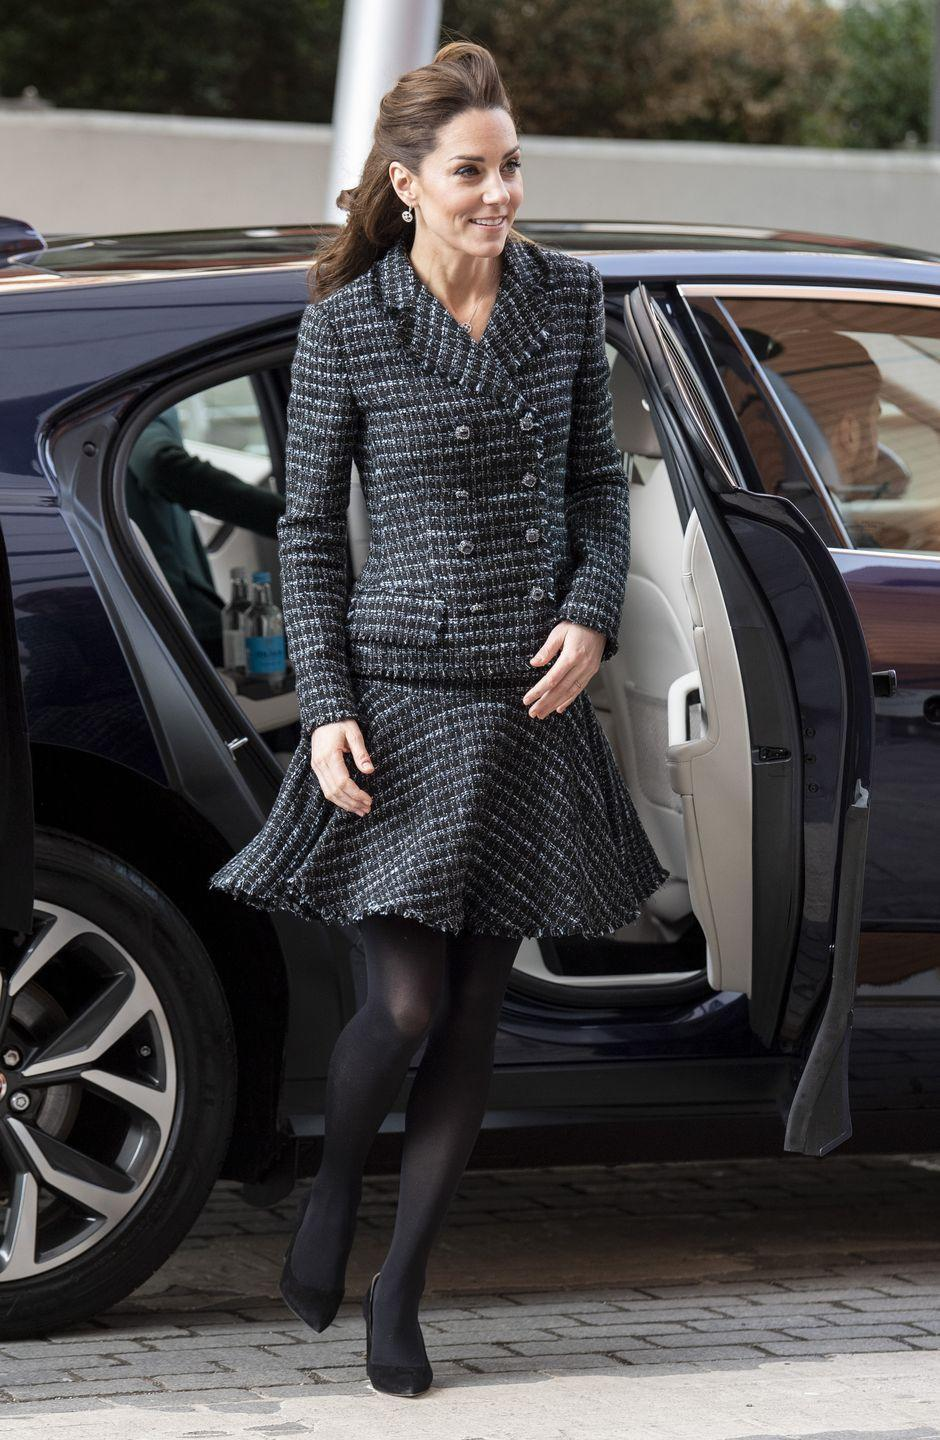 "<p>The Duchess arrived at <a href=""https://www.townandcountrymag.com/society/tradition/a30686555/kate-middleton-dolce-gabbana-skirt-suit-evelina-photos/"" rel=""nofollow noopener"" target=""_blank"" data-ylk=""slk:Evelina Children's Hospital to attend a workshop run by the National Portrait Gallery"" class=""link rapid-noclick-resp"">Evelina Children's Hospital to attend a workshop run by the National Portrait Gallery</a>, wearing a Dolce & Gabbana skirt suit and <a href=""https://go.redirectingat.com?id=74968X1596630&url=https%3A%2F%2Fwww.net-a-porter.com%2Fus%2Fen%2Fproduct%2F1202165&sref=https%3A%2F%2Fwww.townandcountrymag.com%2Fstyle%2Ffashion-trends%2Fnews%2Fg1633%2Fkate-middleton-fashion%2F"" rel=""nofollow noopener"" target=""_blank"" data-ylk=""slk:Gianvito Rossi pumps"" class=""link rapid-noclick-resp"">Gianvito Rossi pumps</a>.</p>"